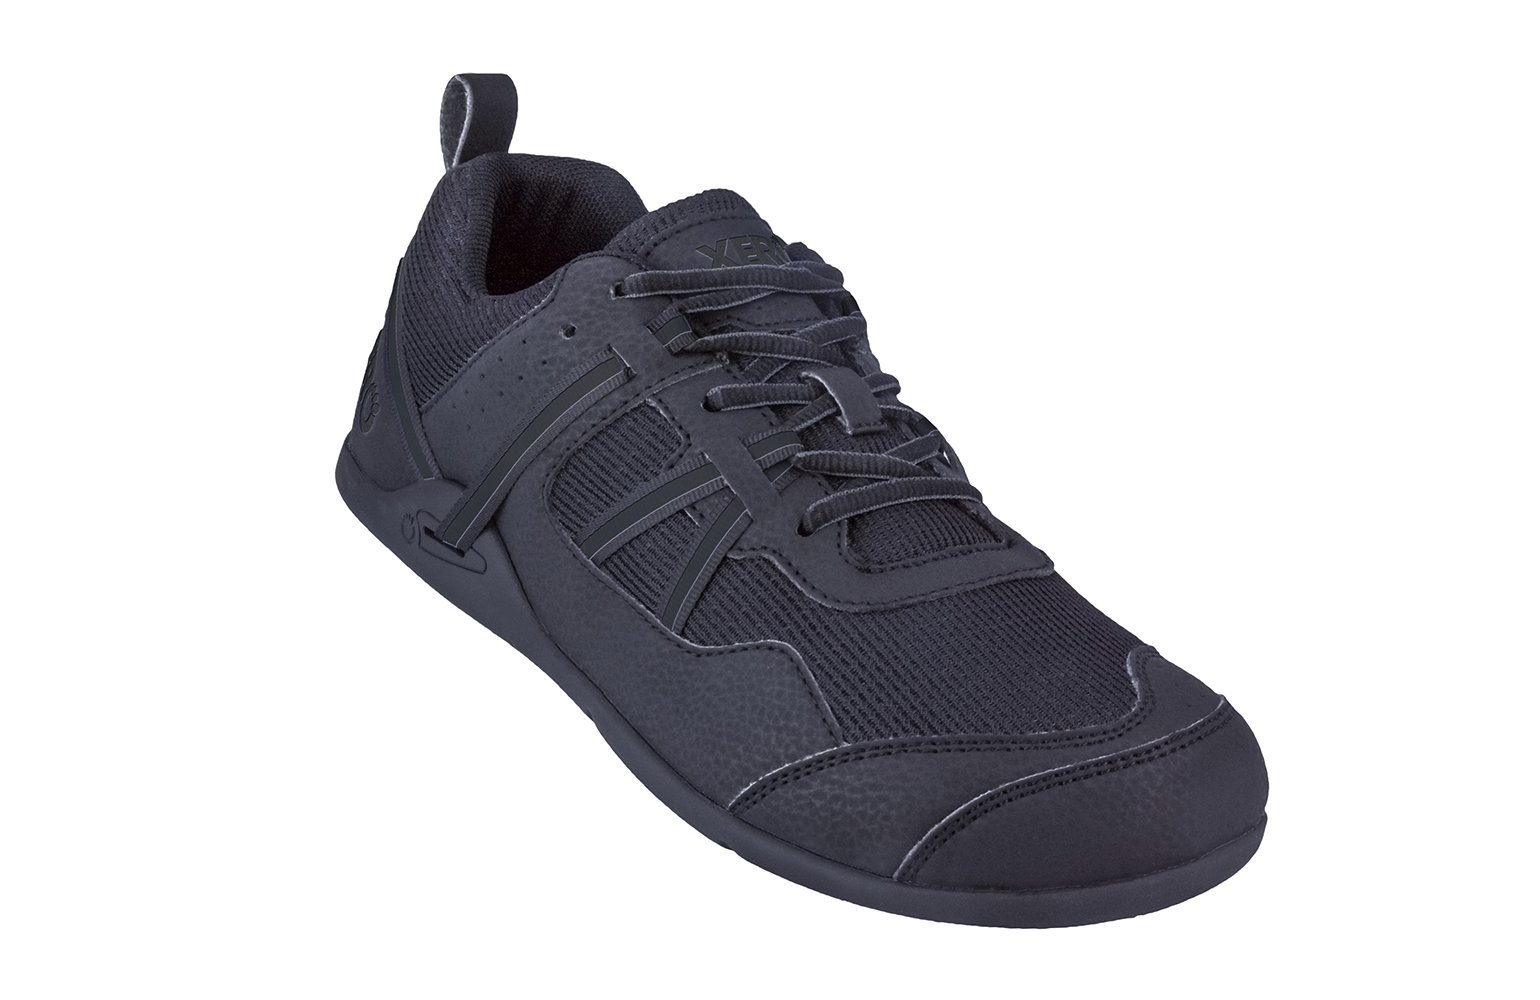 Xero Shoes Prio - Men's Minimalist Barefoot Trail and Road Running Shoe - Fitness, Athletic Zero Drop Sneaker - Black by Xero Shoes (Image #1)